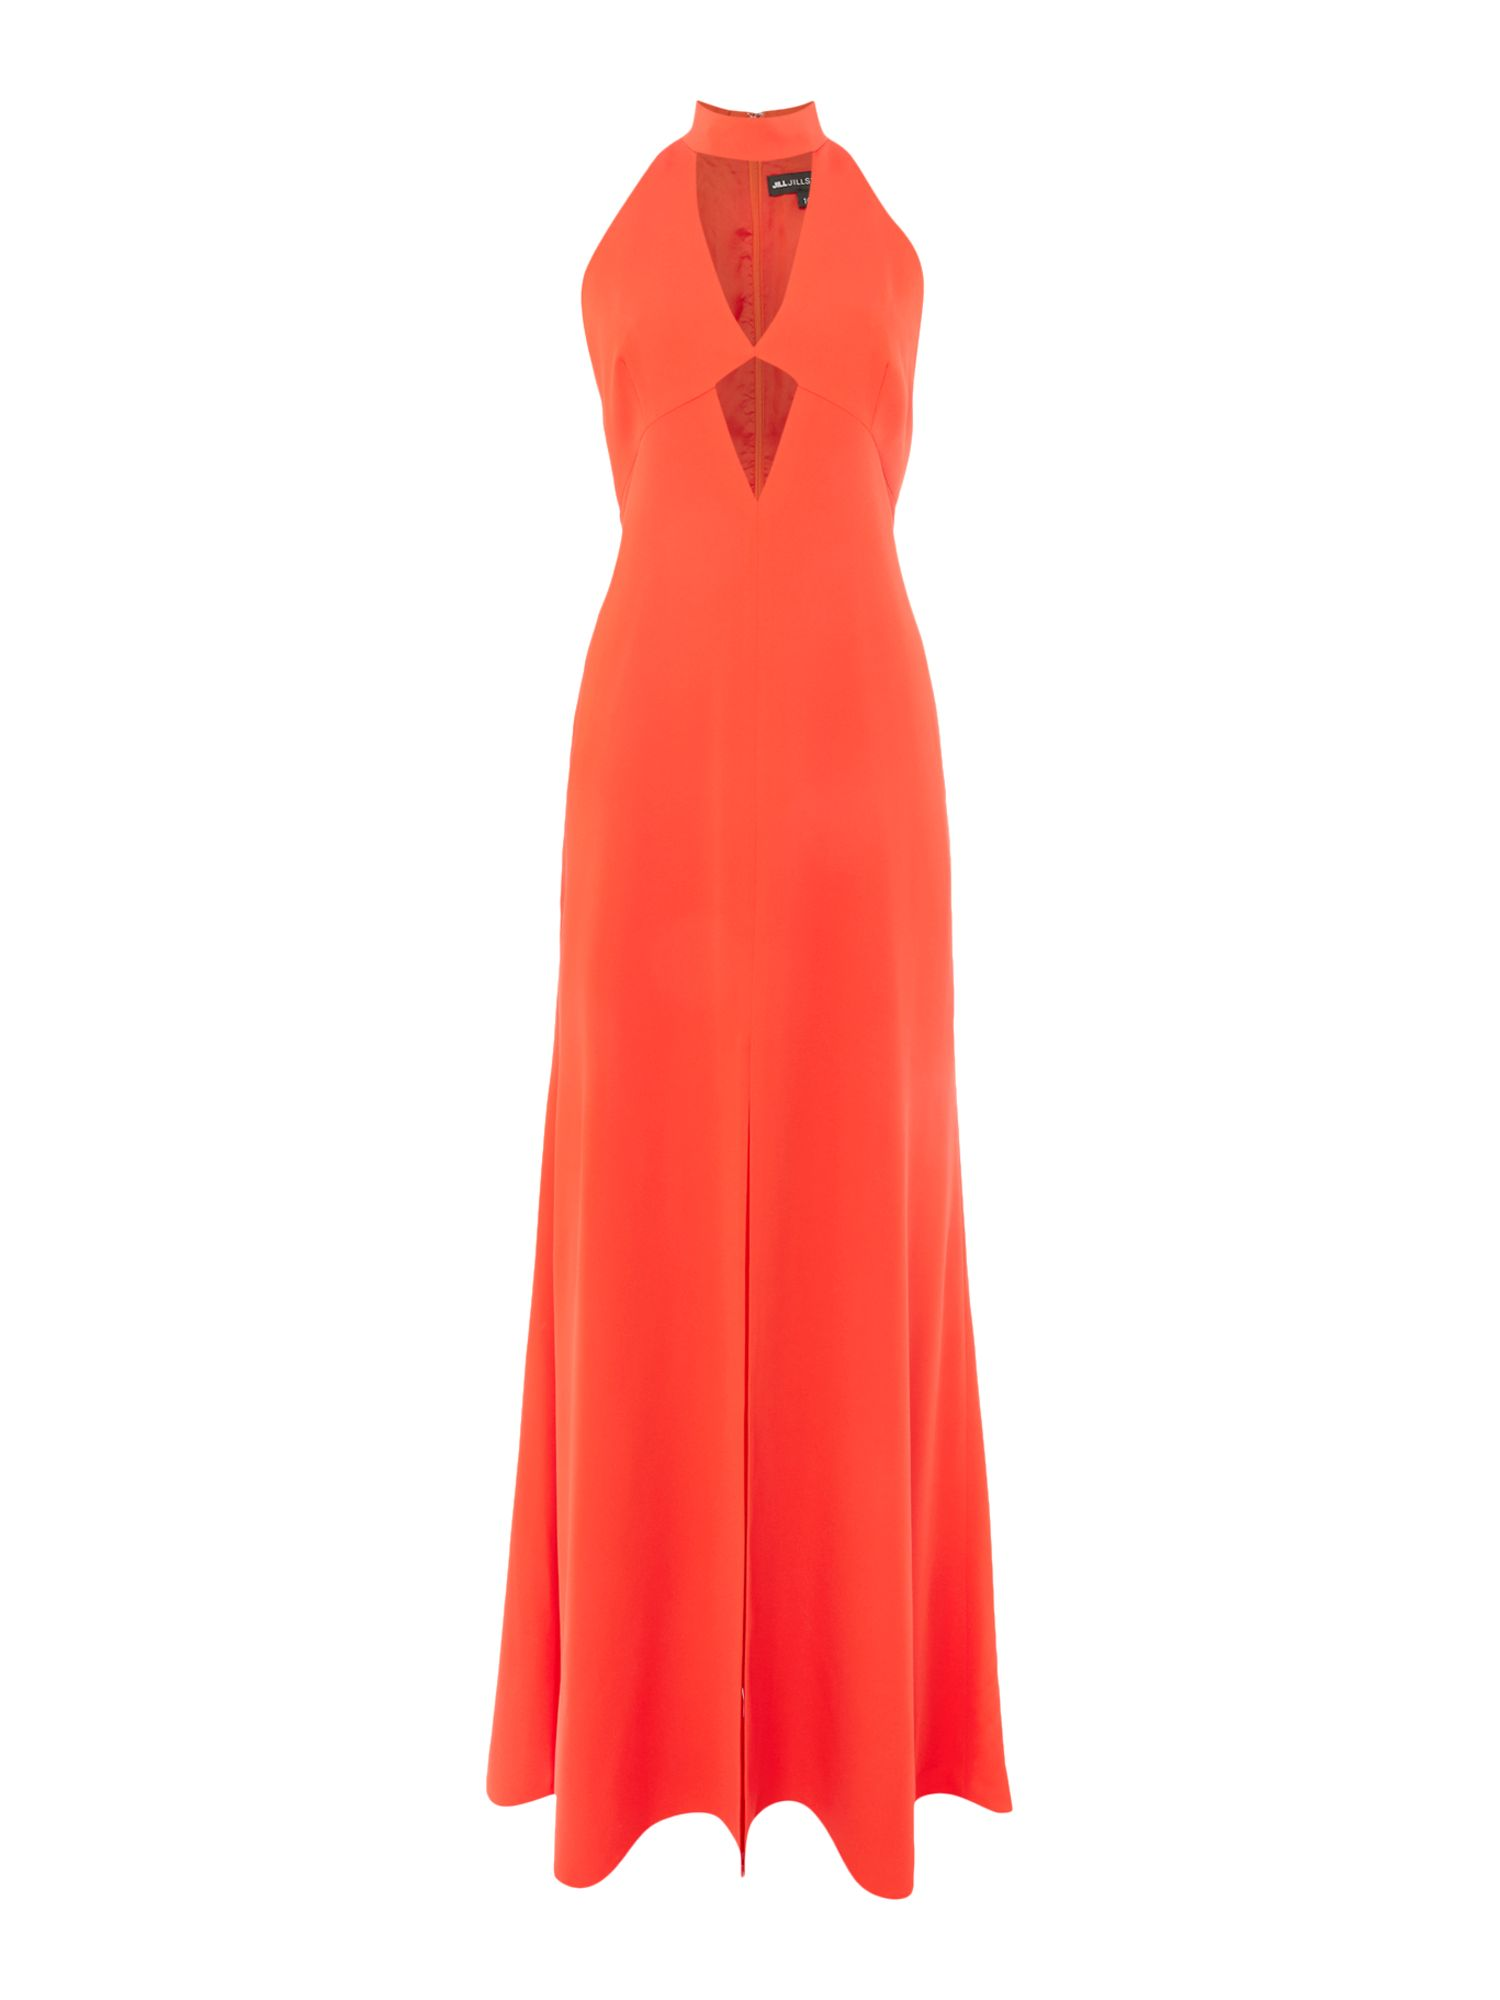 Jill Jill Stuart V neck cut out gown with neck tie, Tangerine